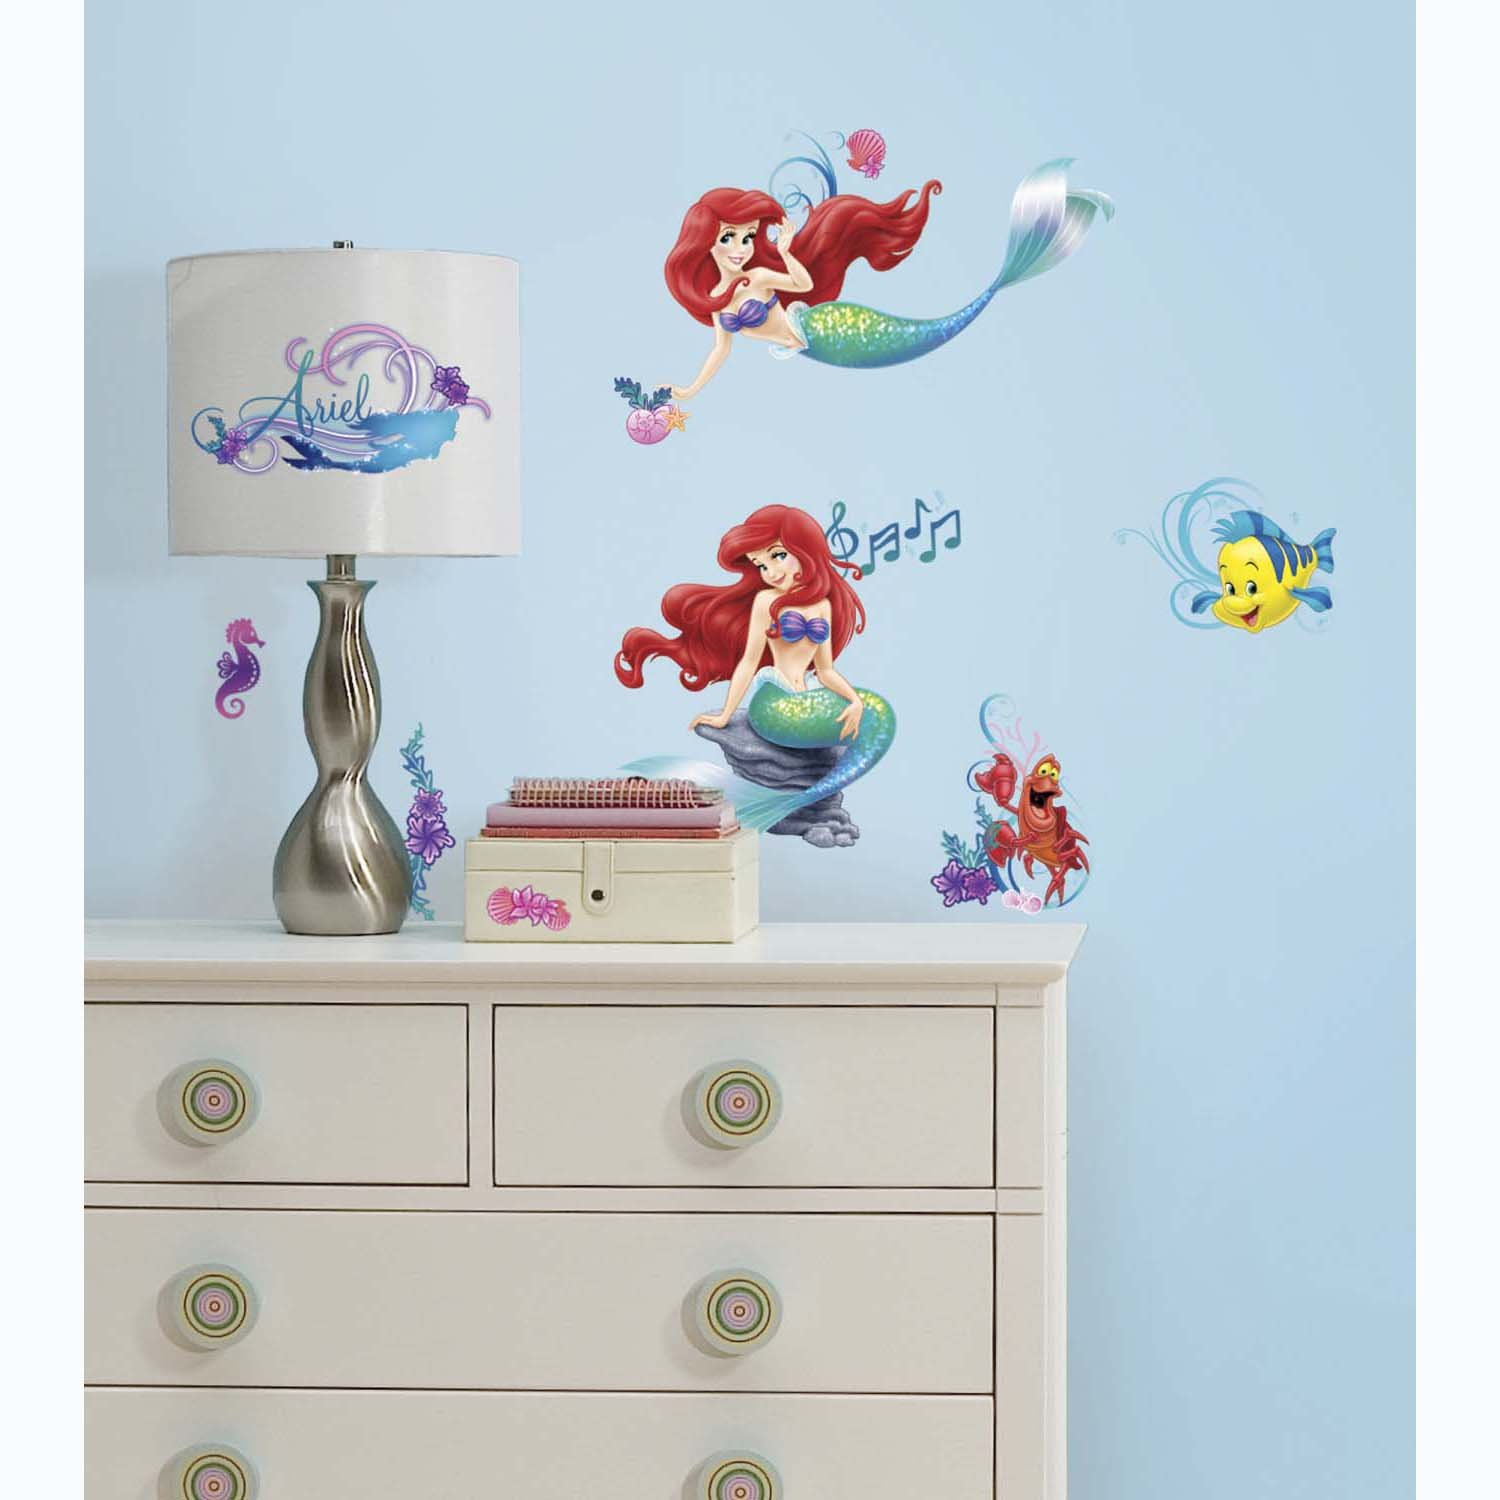 Roommates rmk2347scs the little mermaid peel and stick wall decals roommates rmk2347scs the little mermaid peel and stick wall decals 1 pack decorative wall appliques amazon amipublicfo Images